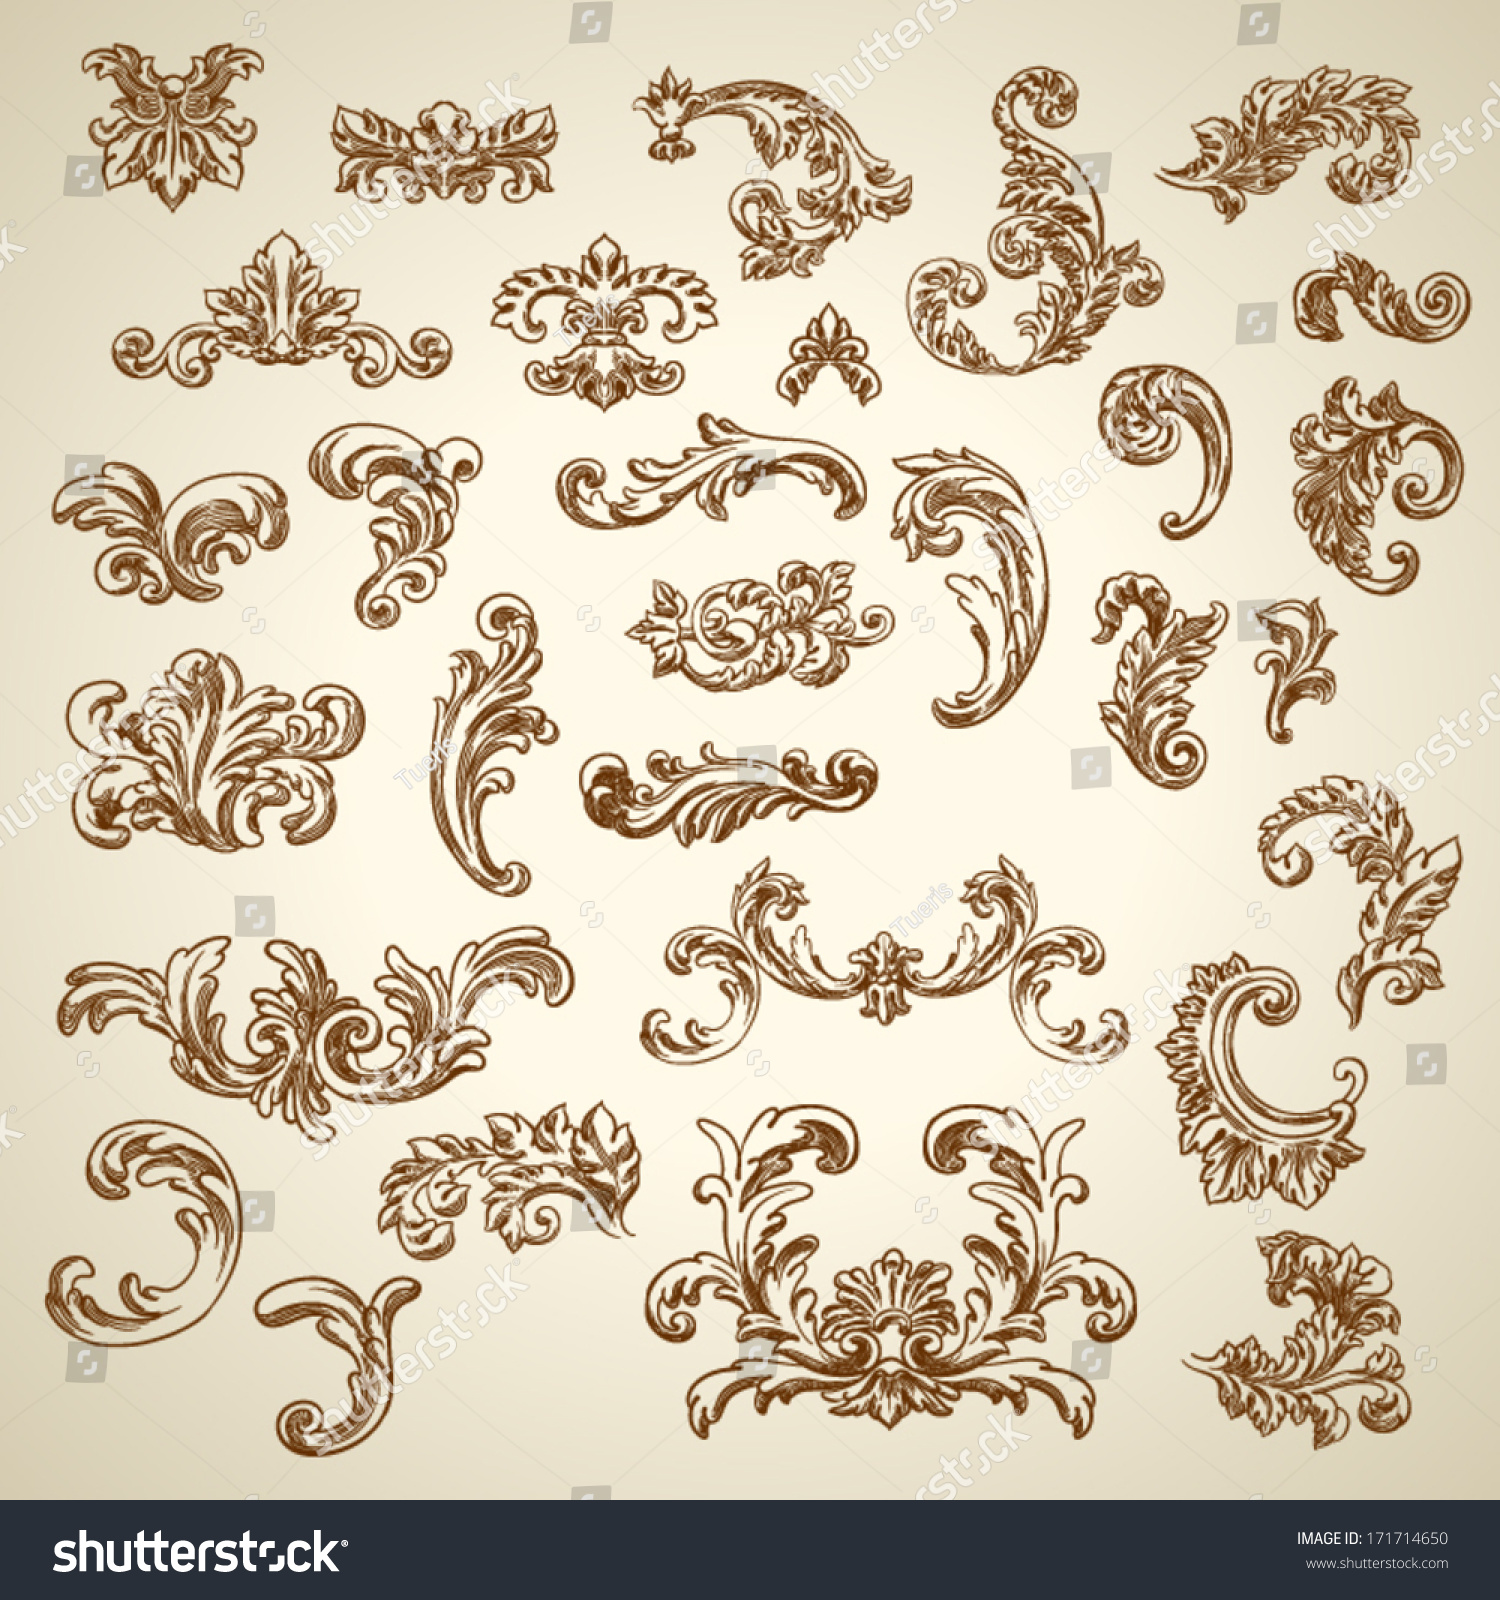 Antique Scroll Design: Set Of Vector Vintage Baroque Engraving Floral Scroll